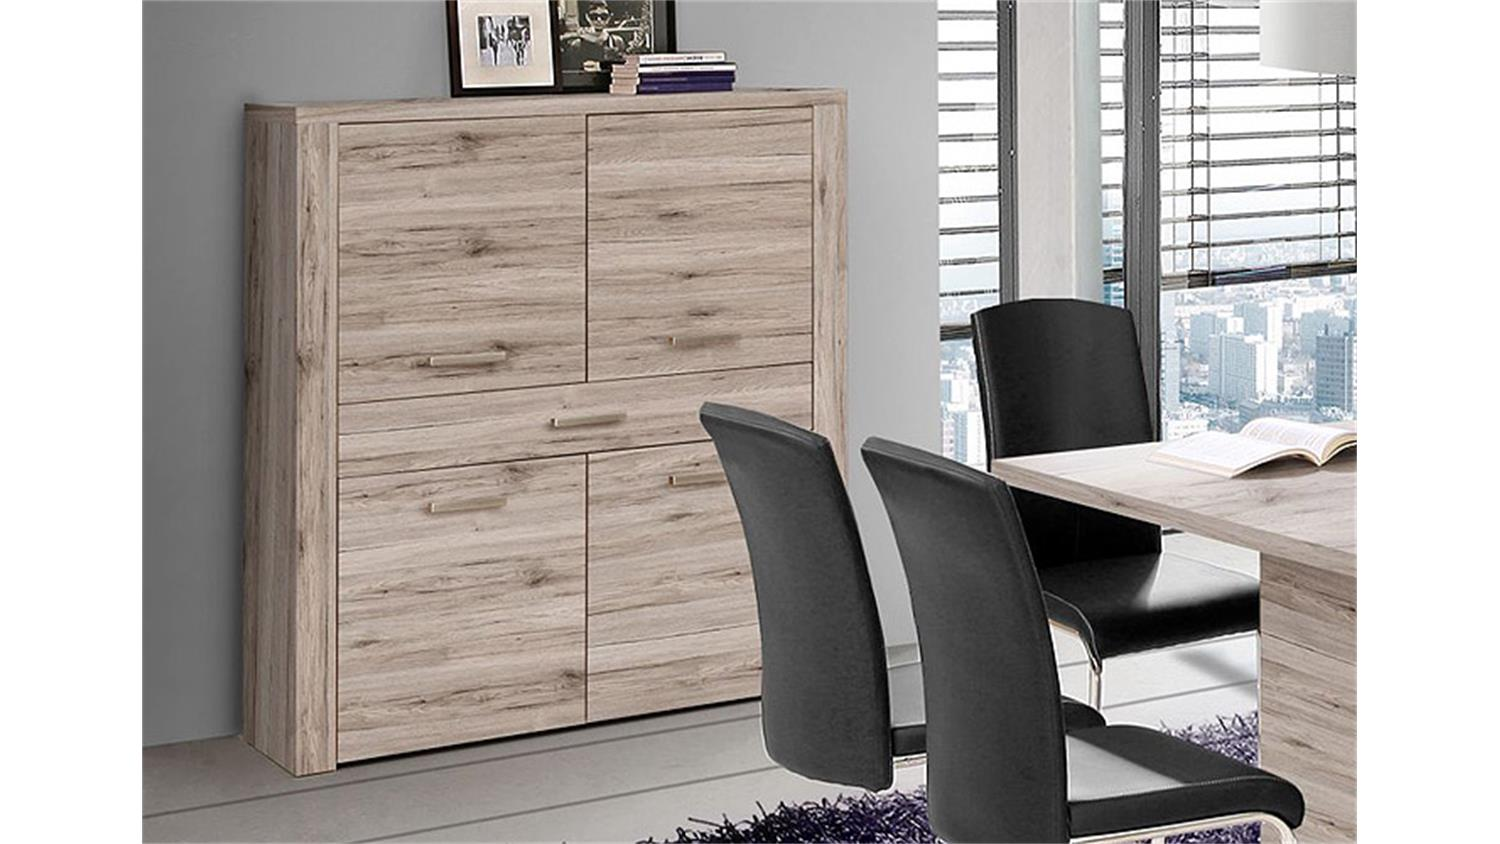 Wohnwand Möbel Hardeck Mbel Highboard Nussbaum With Mbel Highboard Perfect